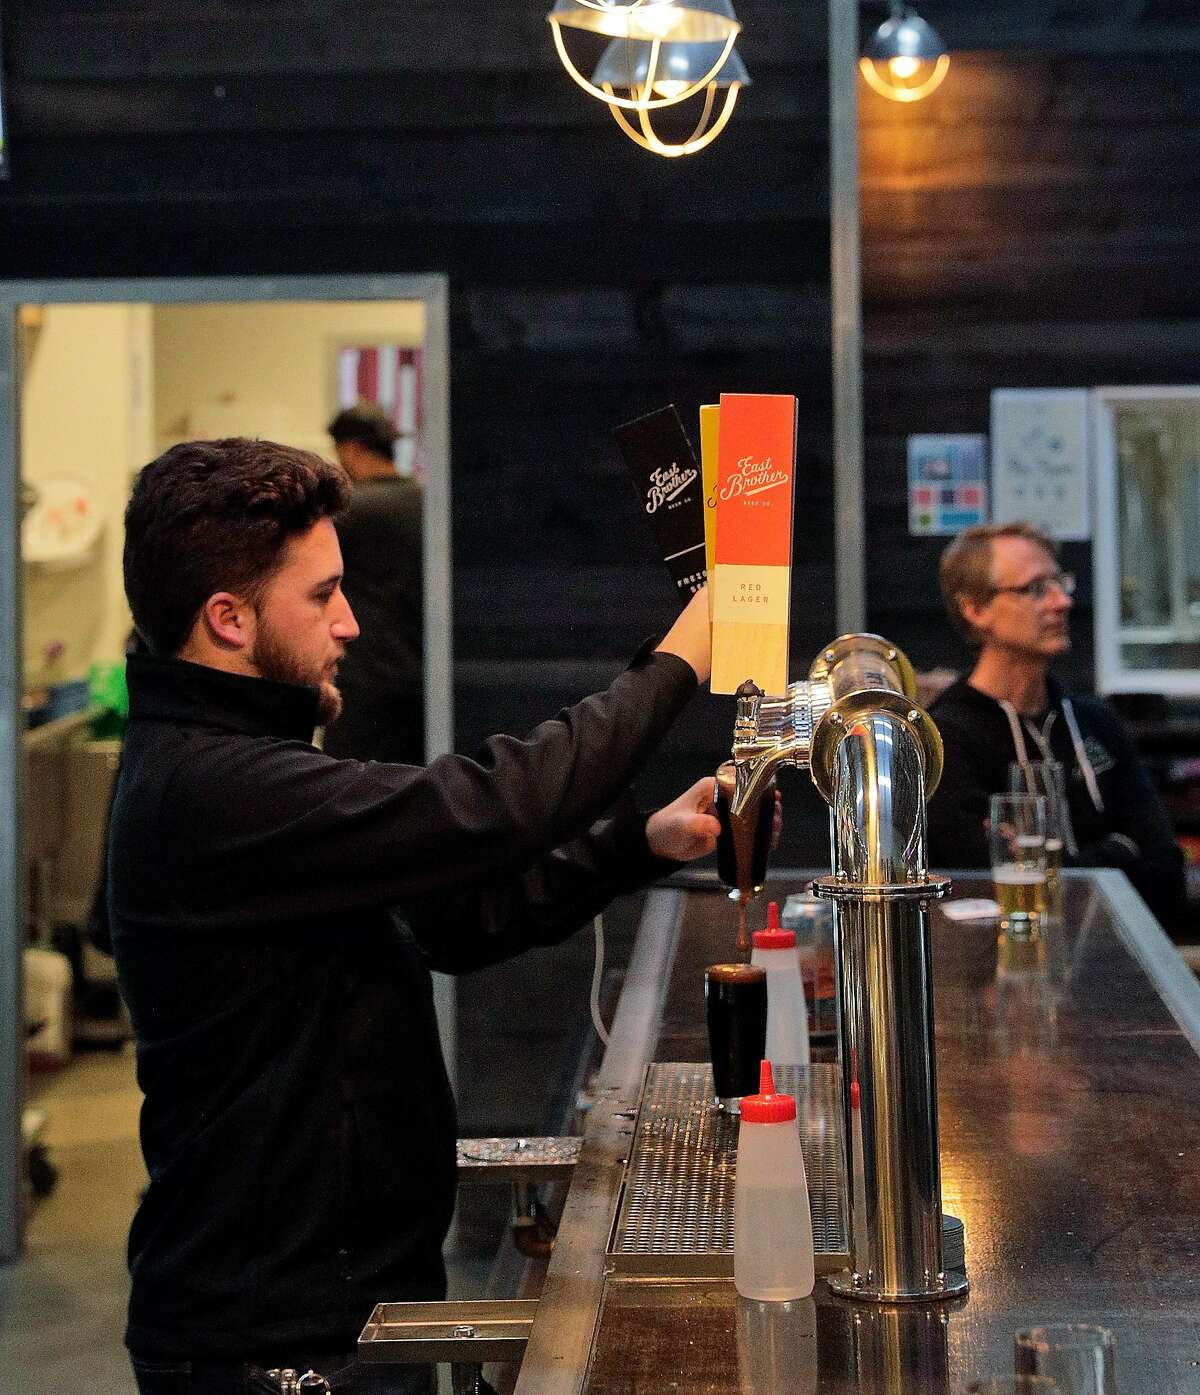 Bartender Gabriel Martin pours a beer behind the bar at East Brother Beer Company which is specializing in craft Lager beer in Richmond, Calif., on Thursday, January 16, 2020. There has been a rise of craft lager beers in the Bay Area, and unlike other local breweries that specialize in hoppy IPAs and sour beers, East Brother Beer Co. in Richmond focuses on classic, balanced lagers.